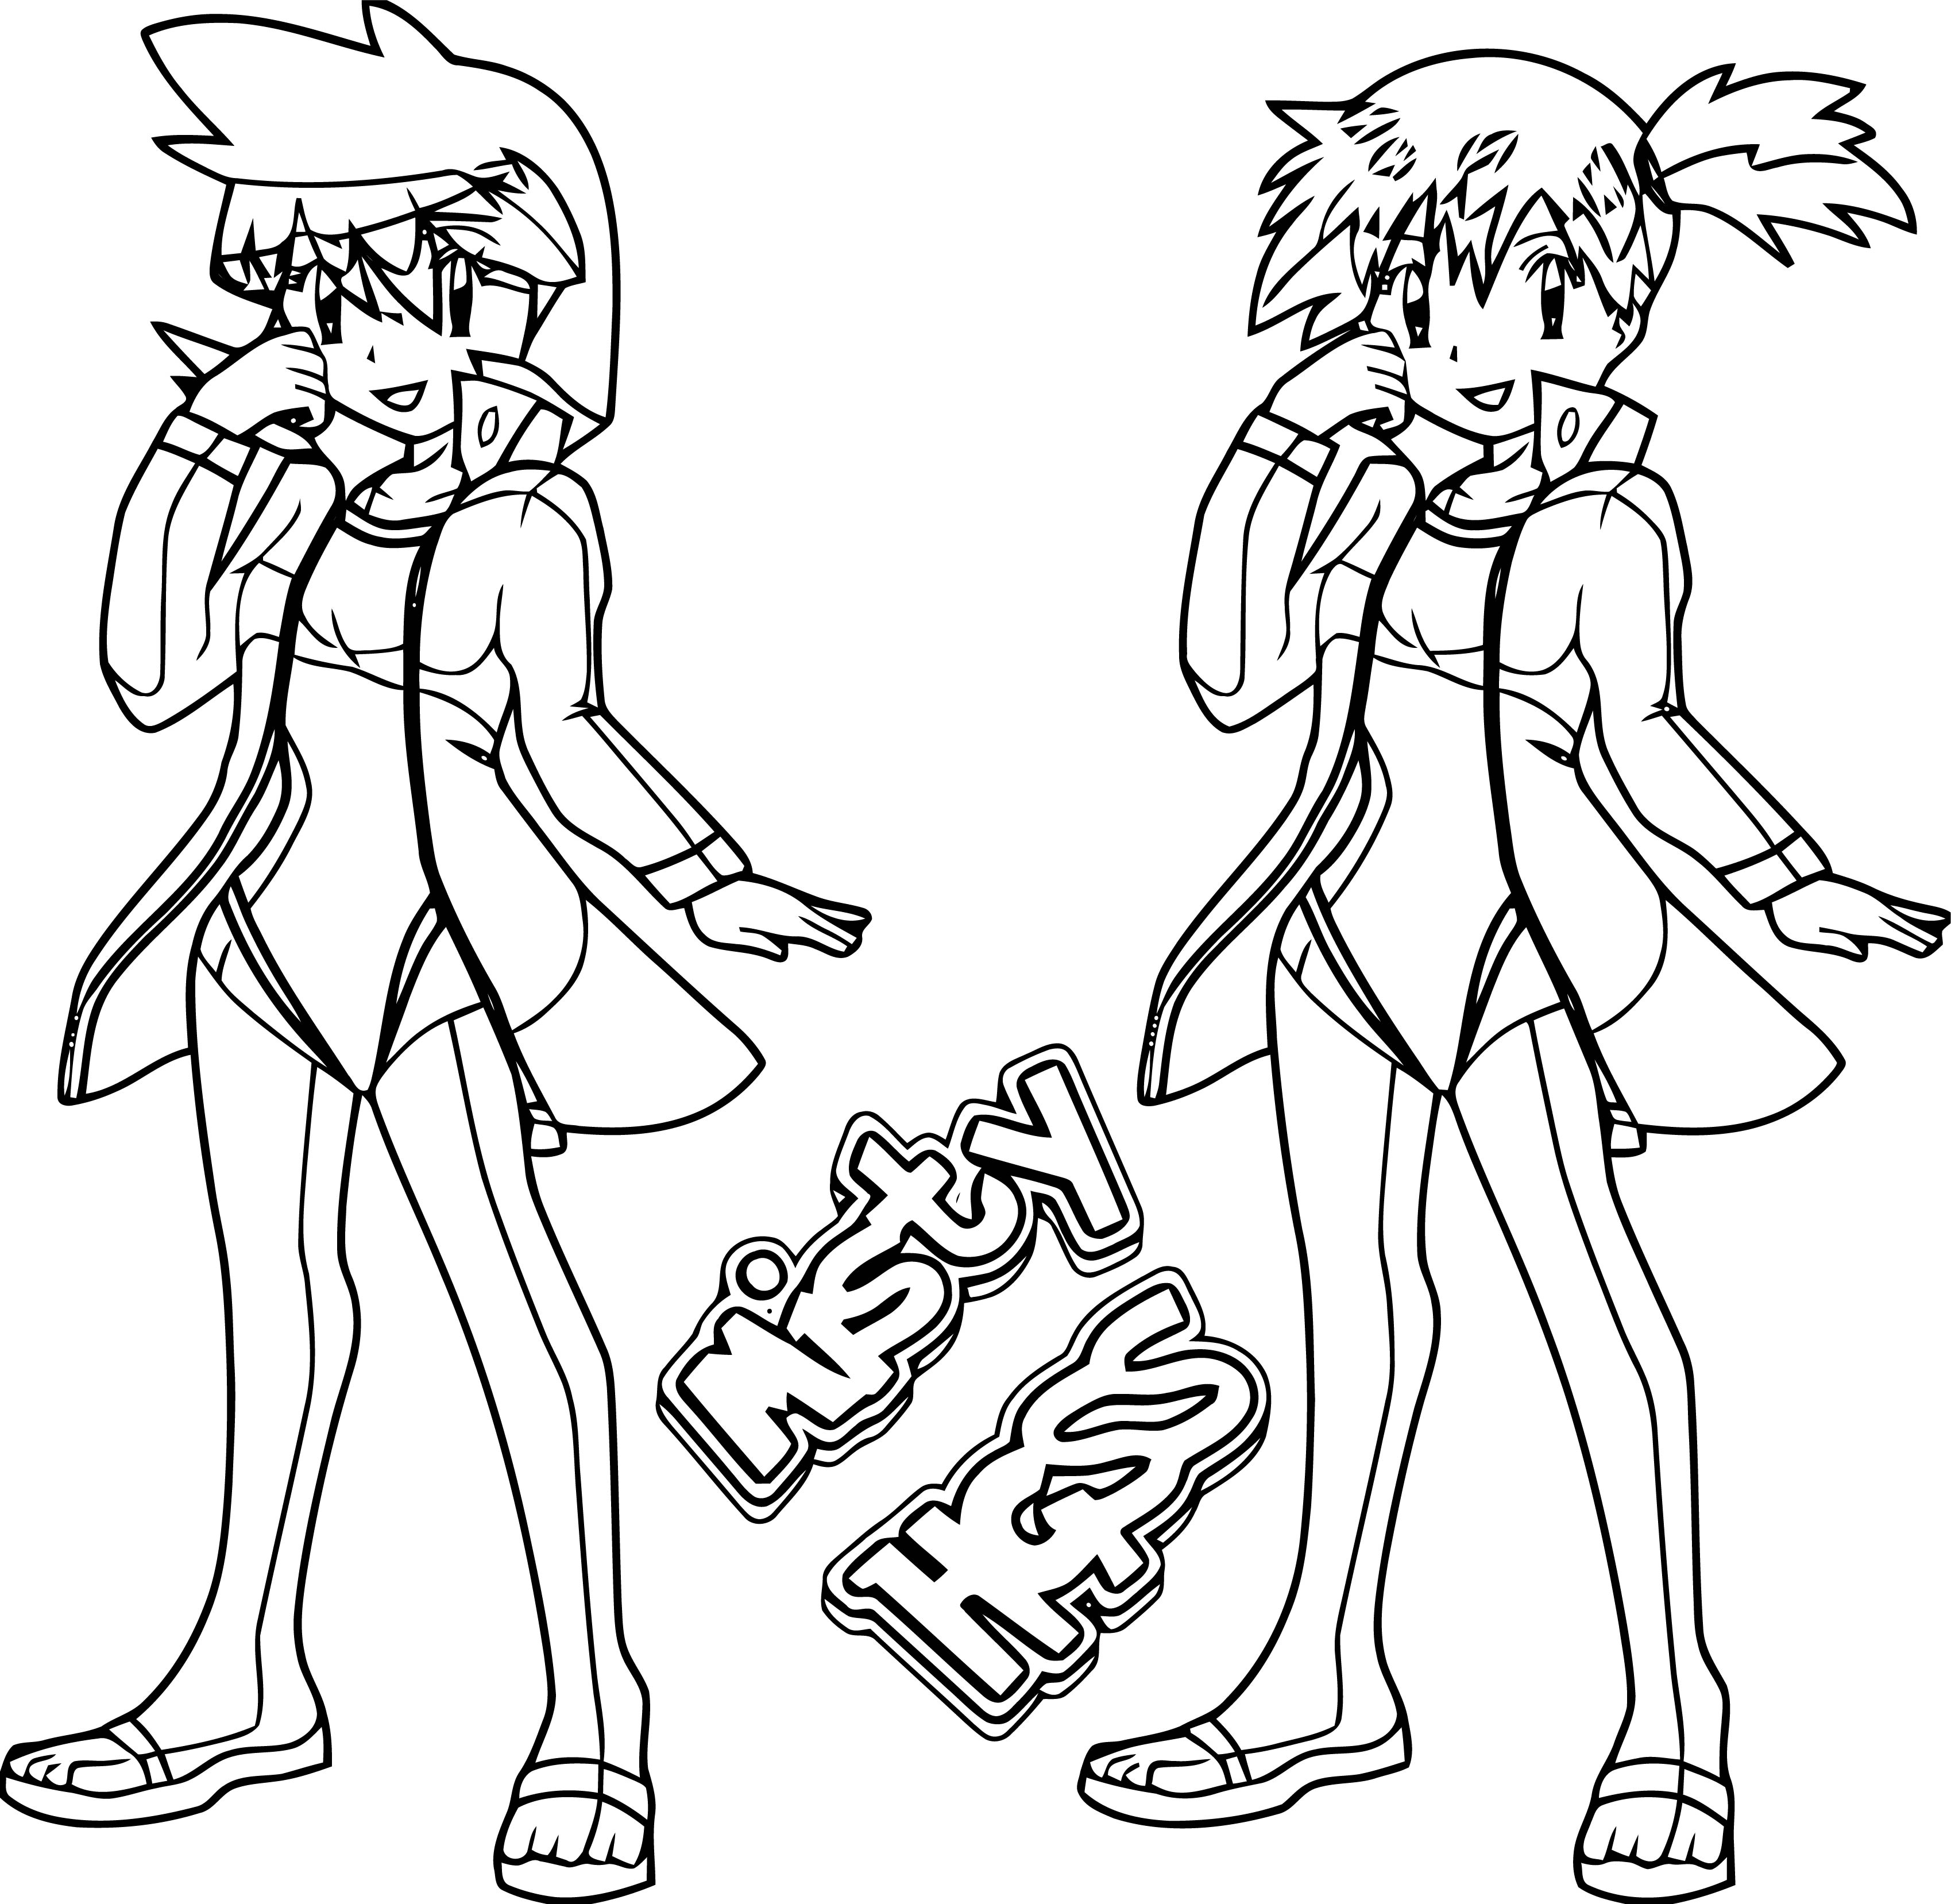 Manga Misty Hgss Girl Coloring Page